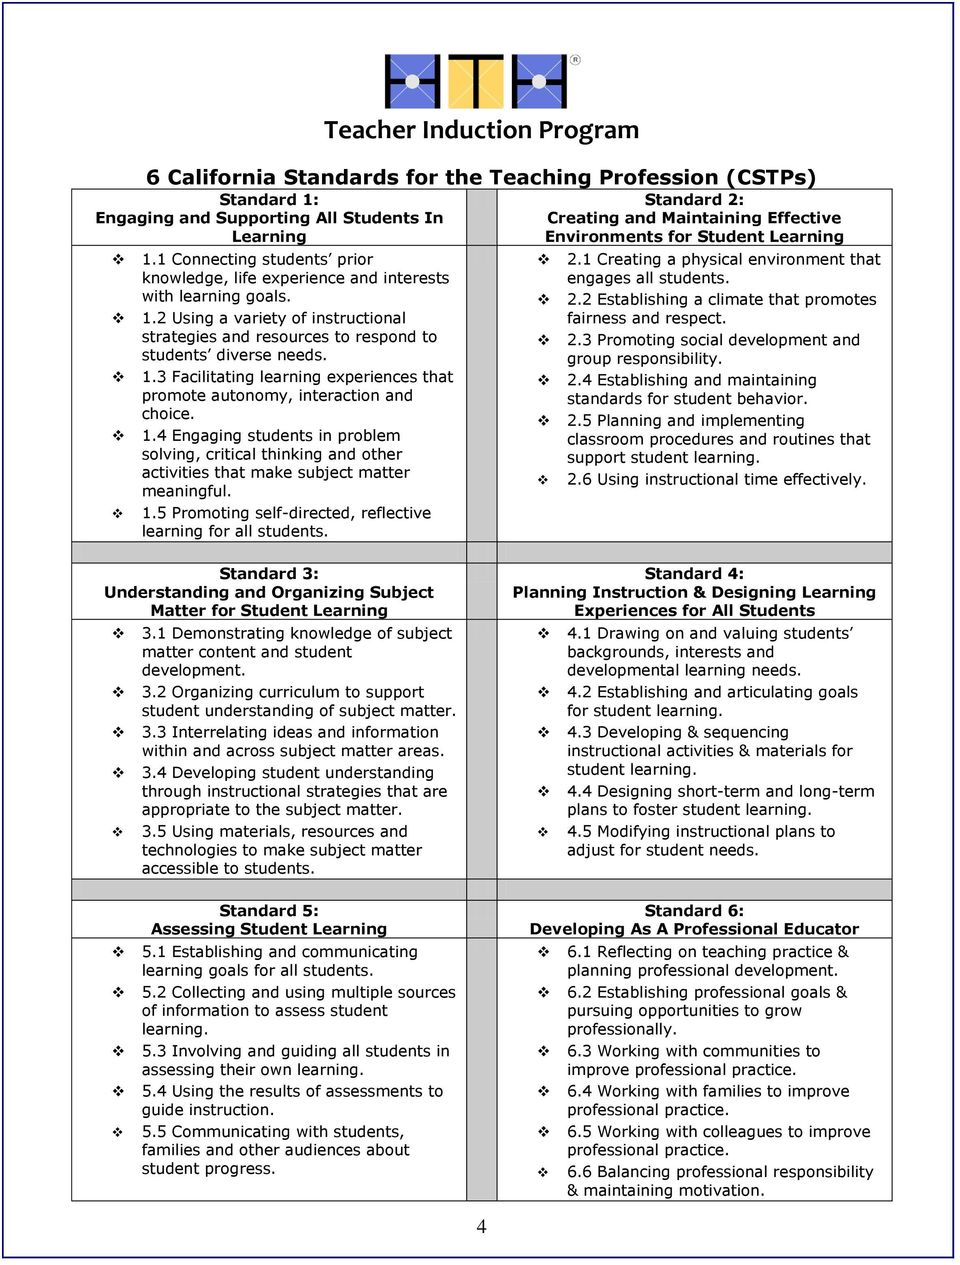 1.4 Engaging students in problem solving, critical thinking and other activities that make subject matter meaningful. 1.5 Promoting self-directed, reflective learning for all students.